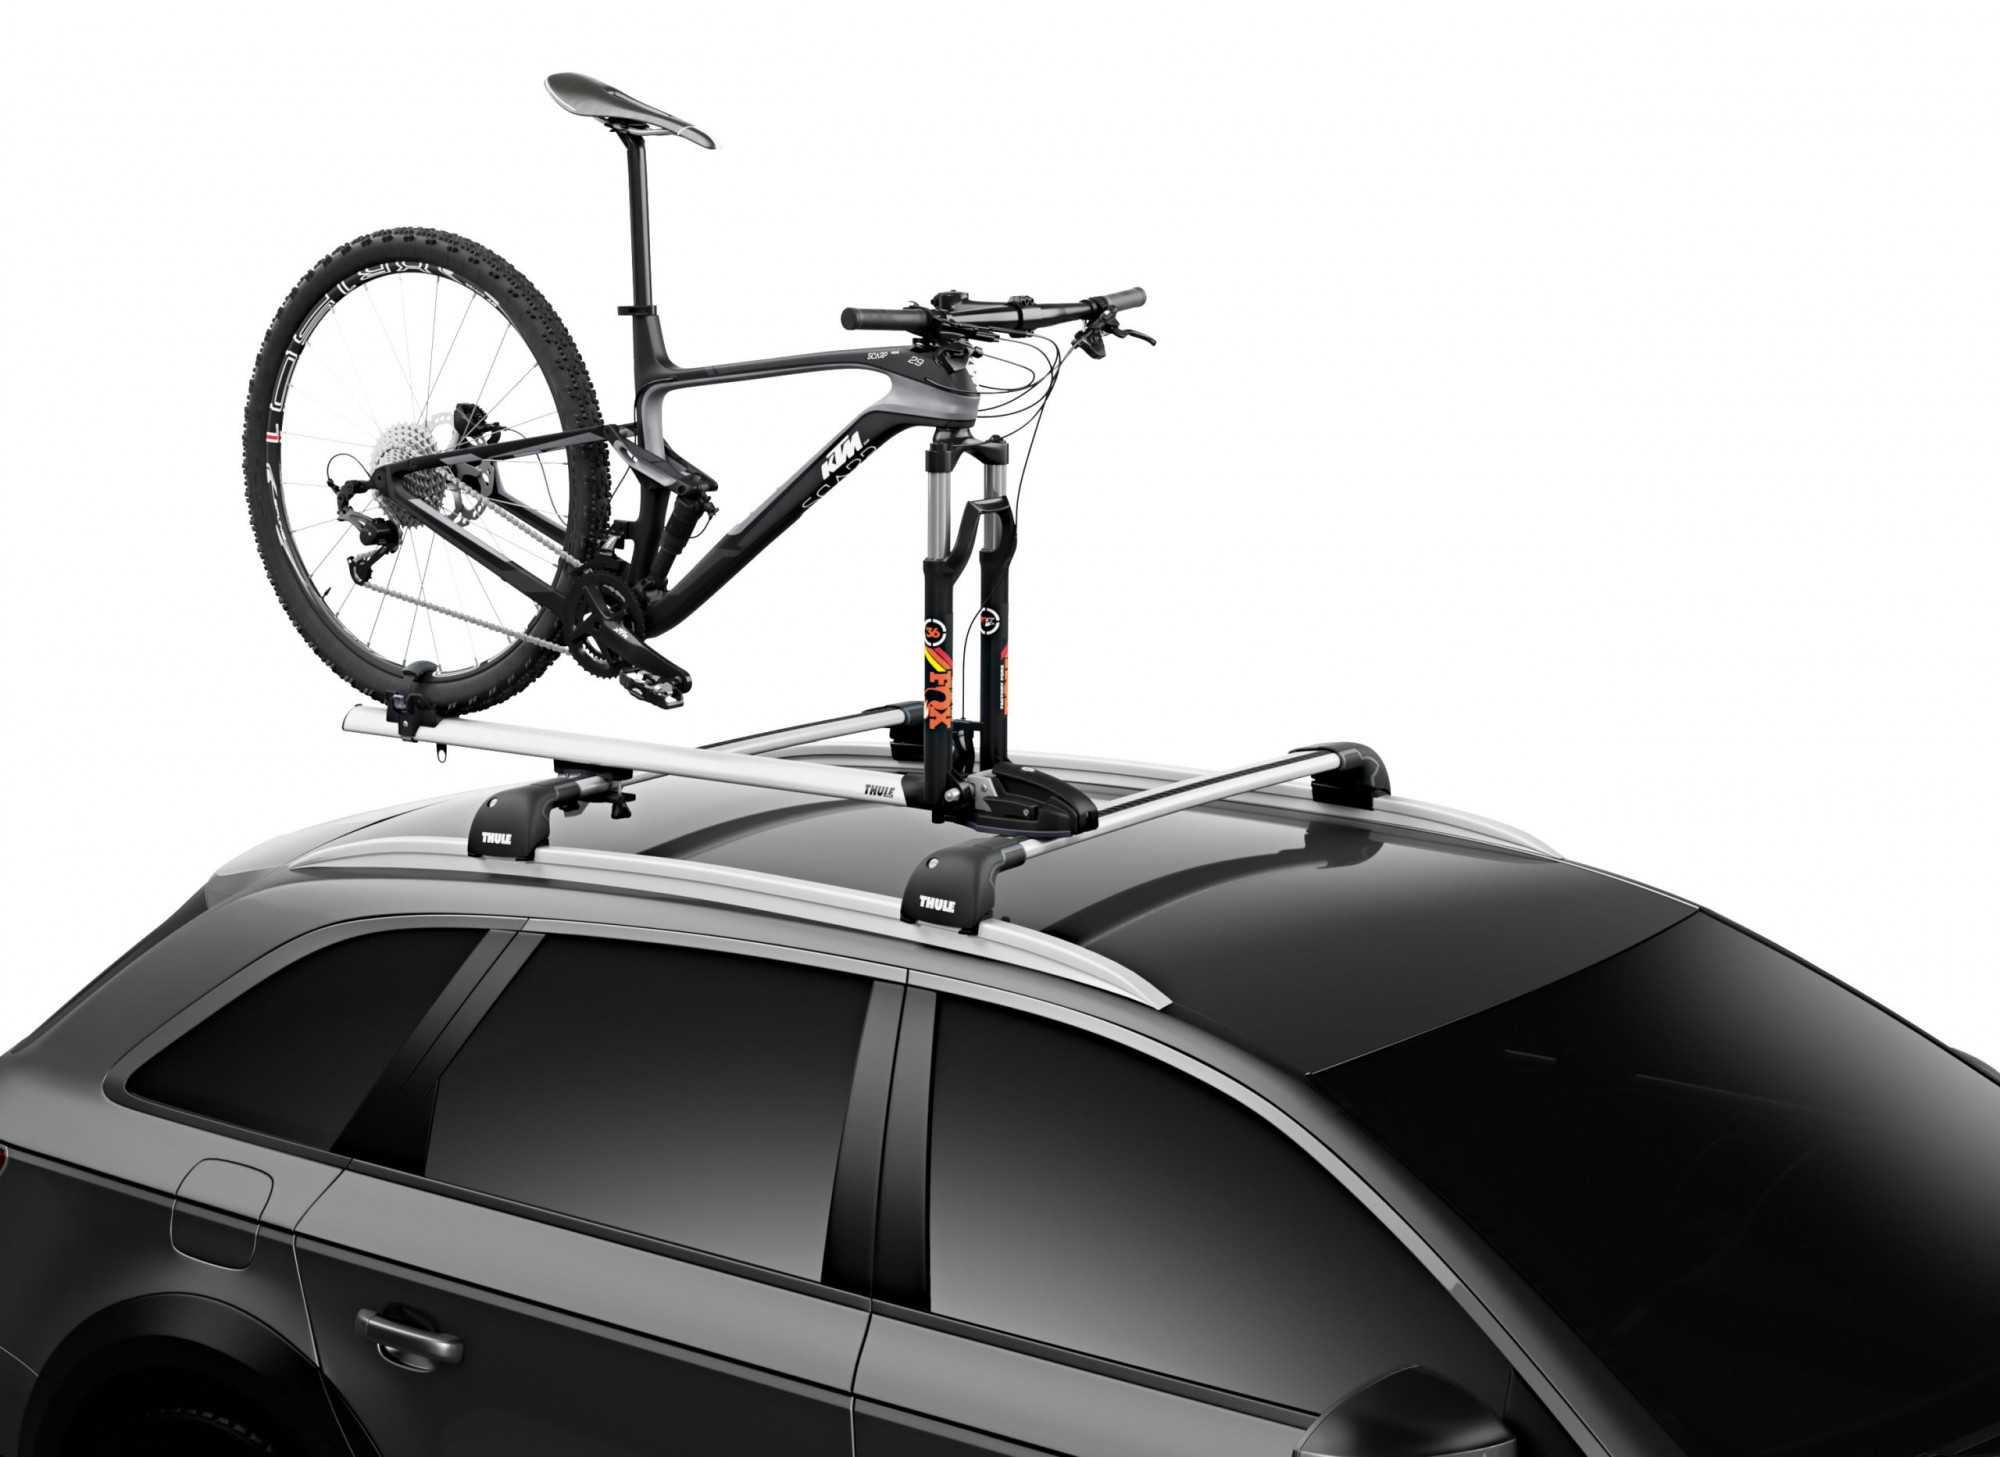 Fork-mount bike rack designed to fit thru-axles without extra adapters.